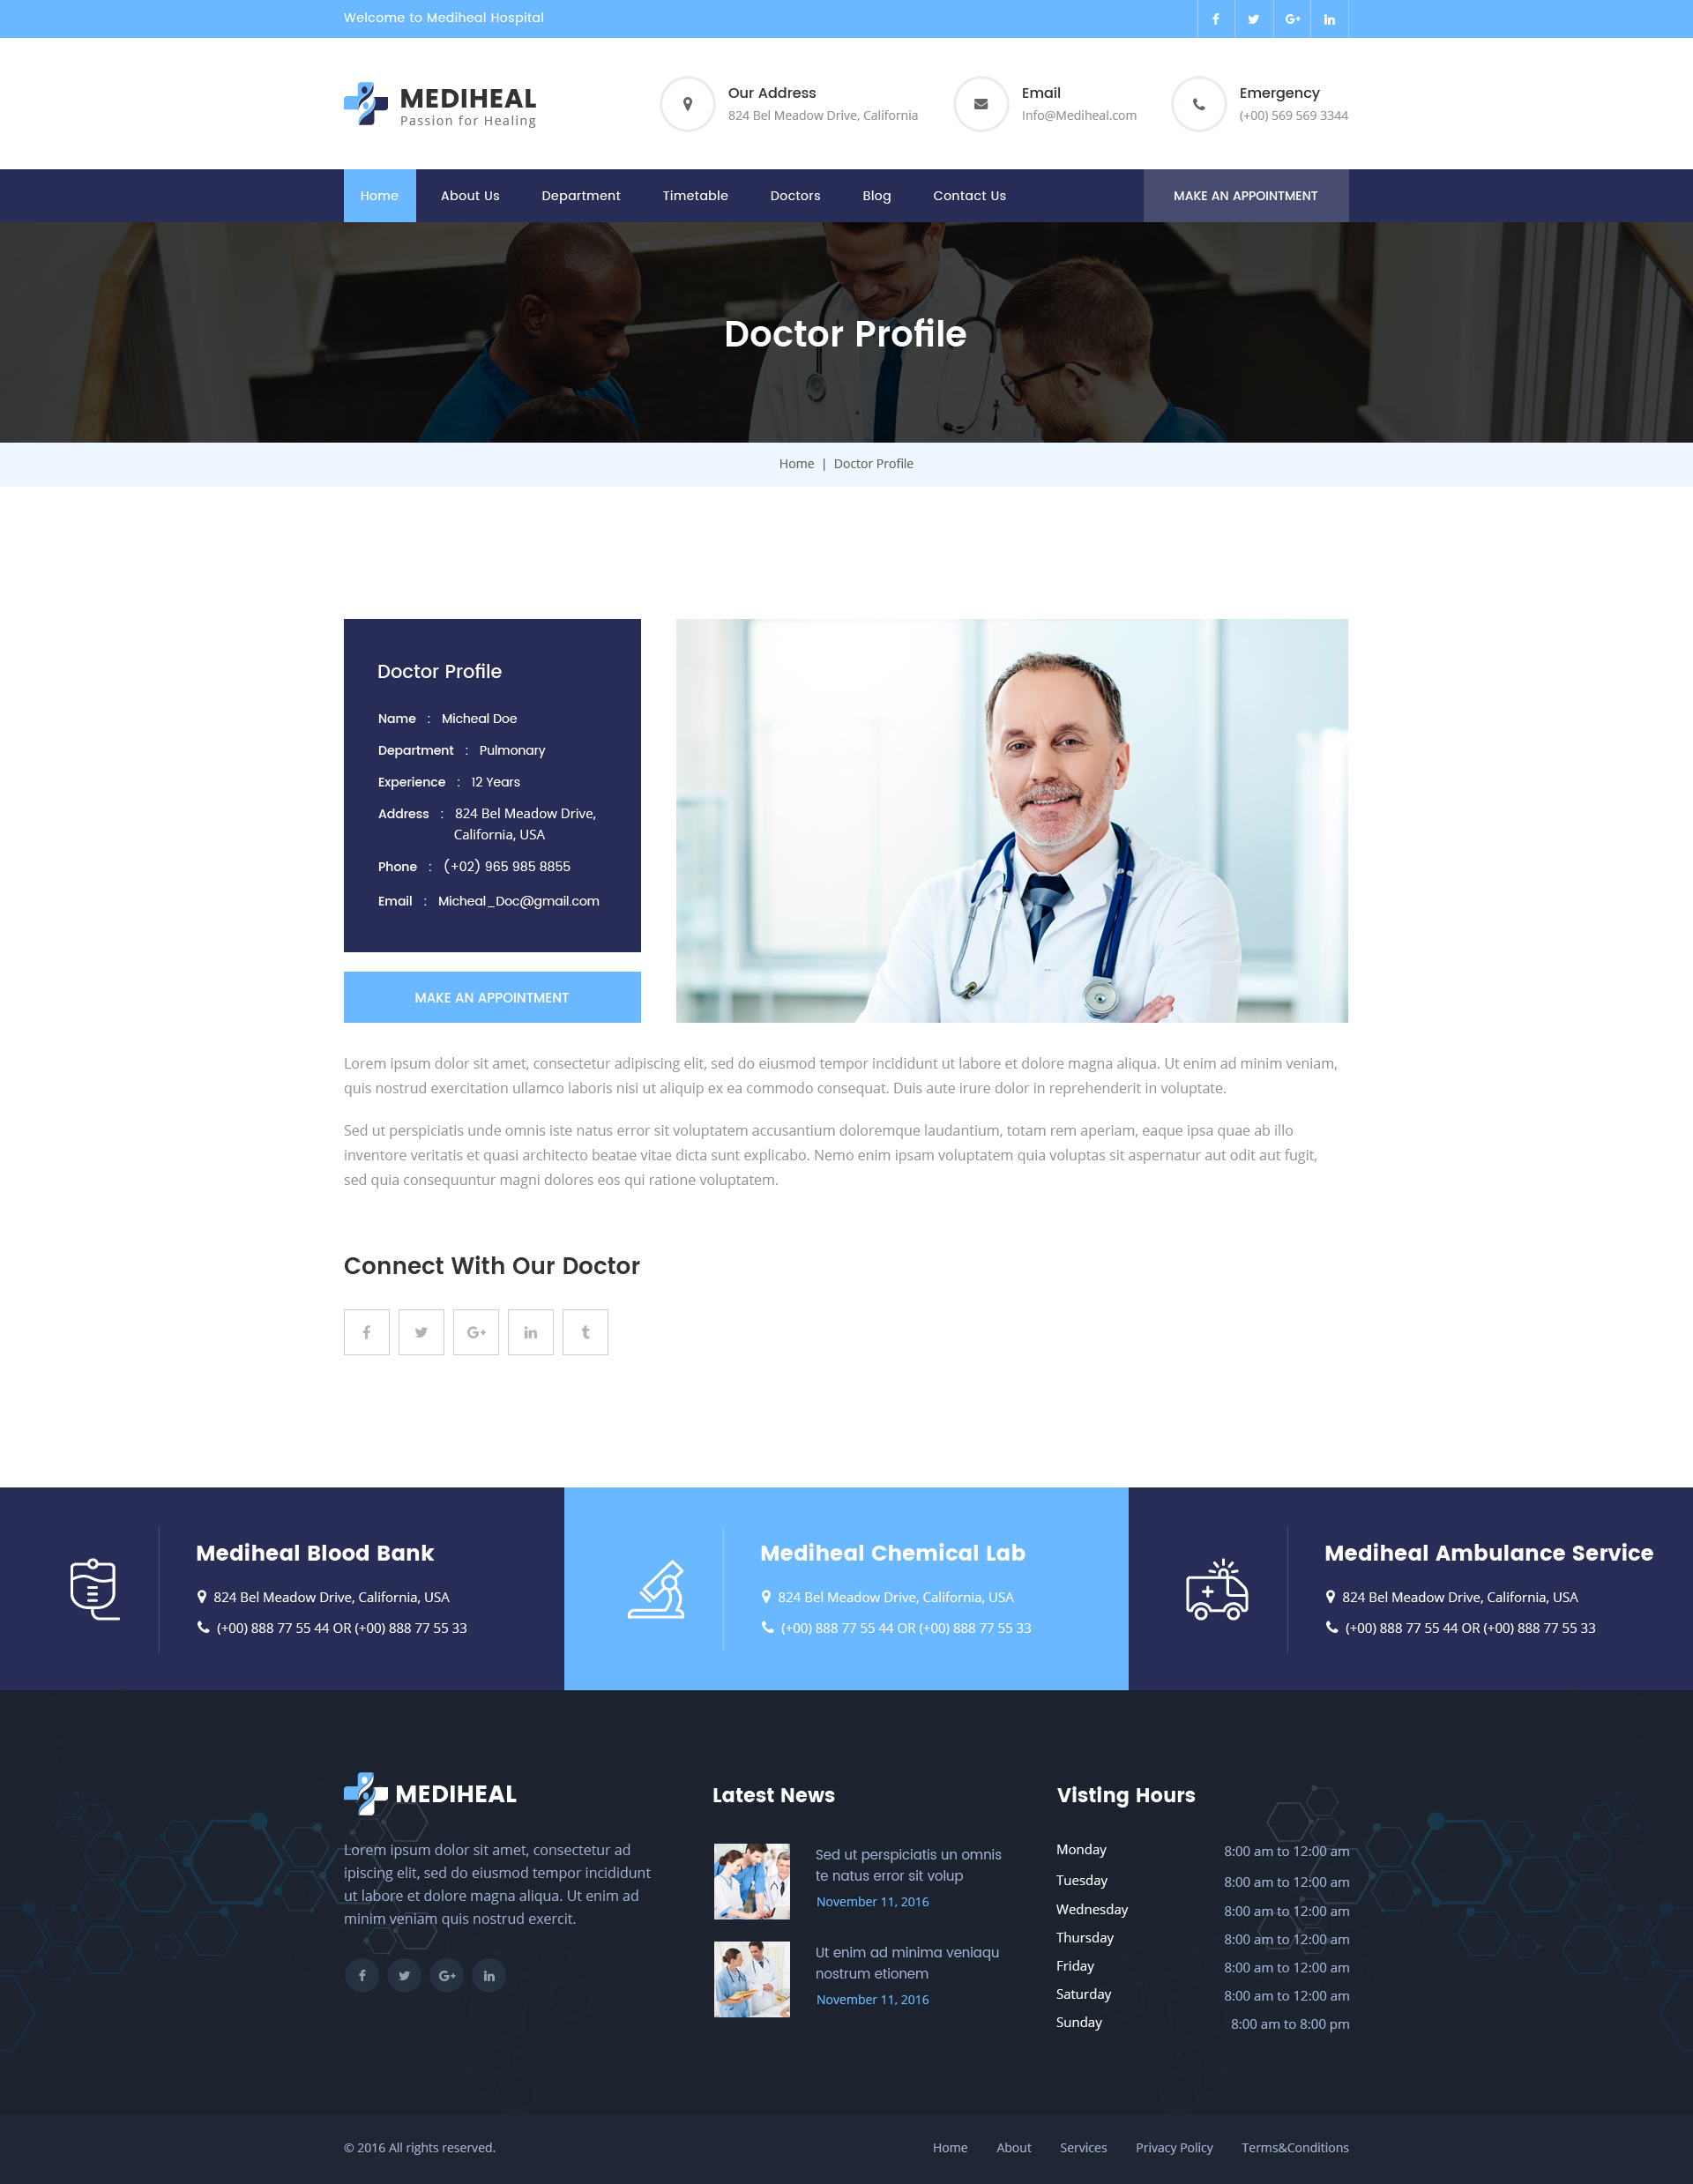 free dating website for doctors Doctors inlet's best 100% free gay dating site want to meet single gay men in doctors inlet, florida mingle2's gay doctors inlet personals are the free and easy way to find other doctors inlet gay singles looking for dates, boyfriends, sex, or friends.